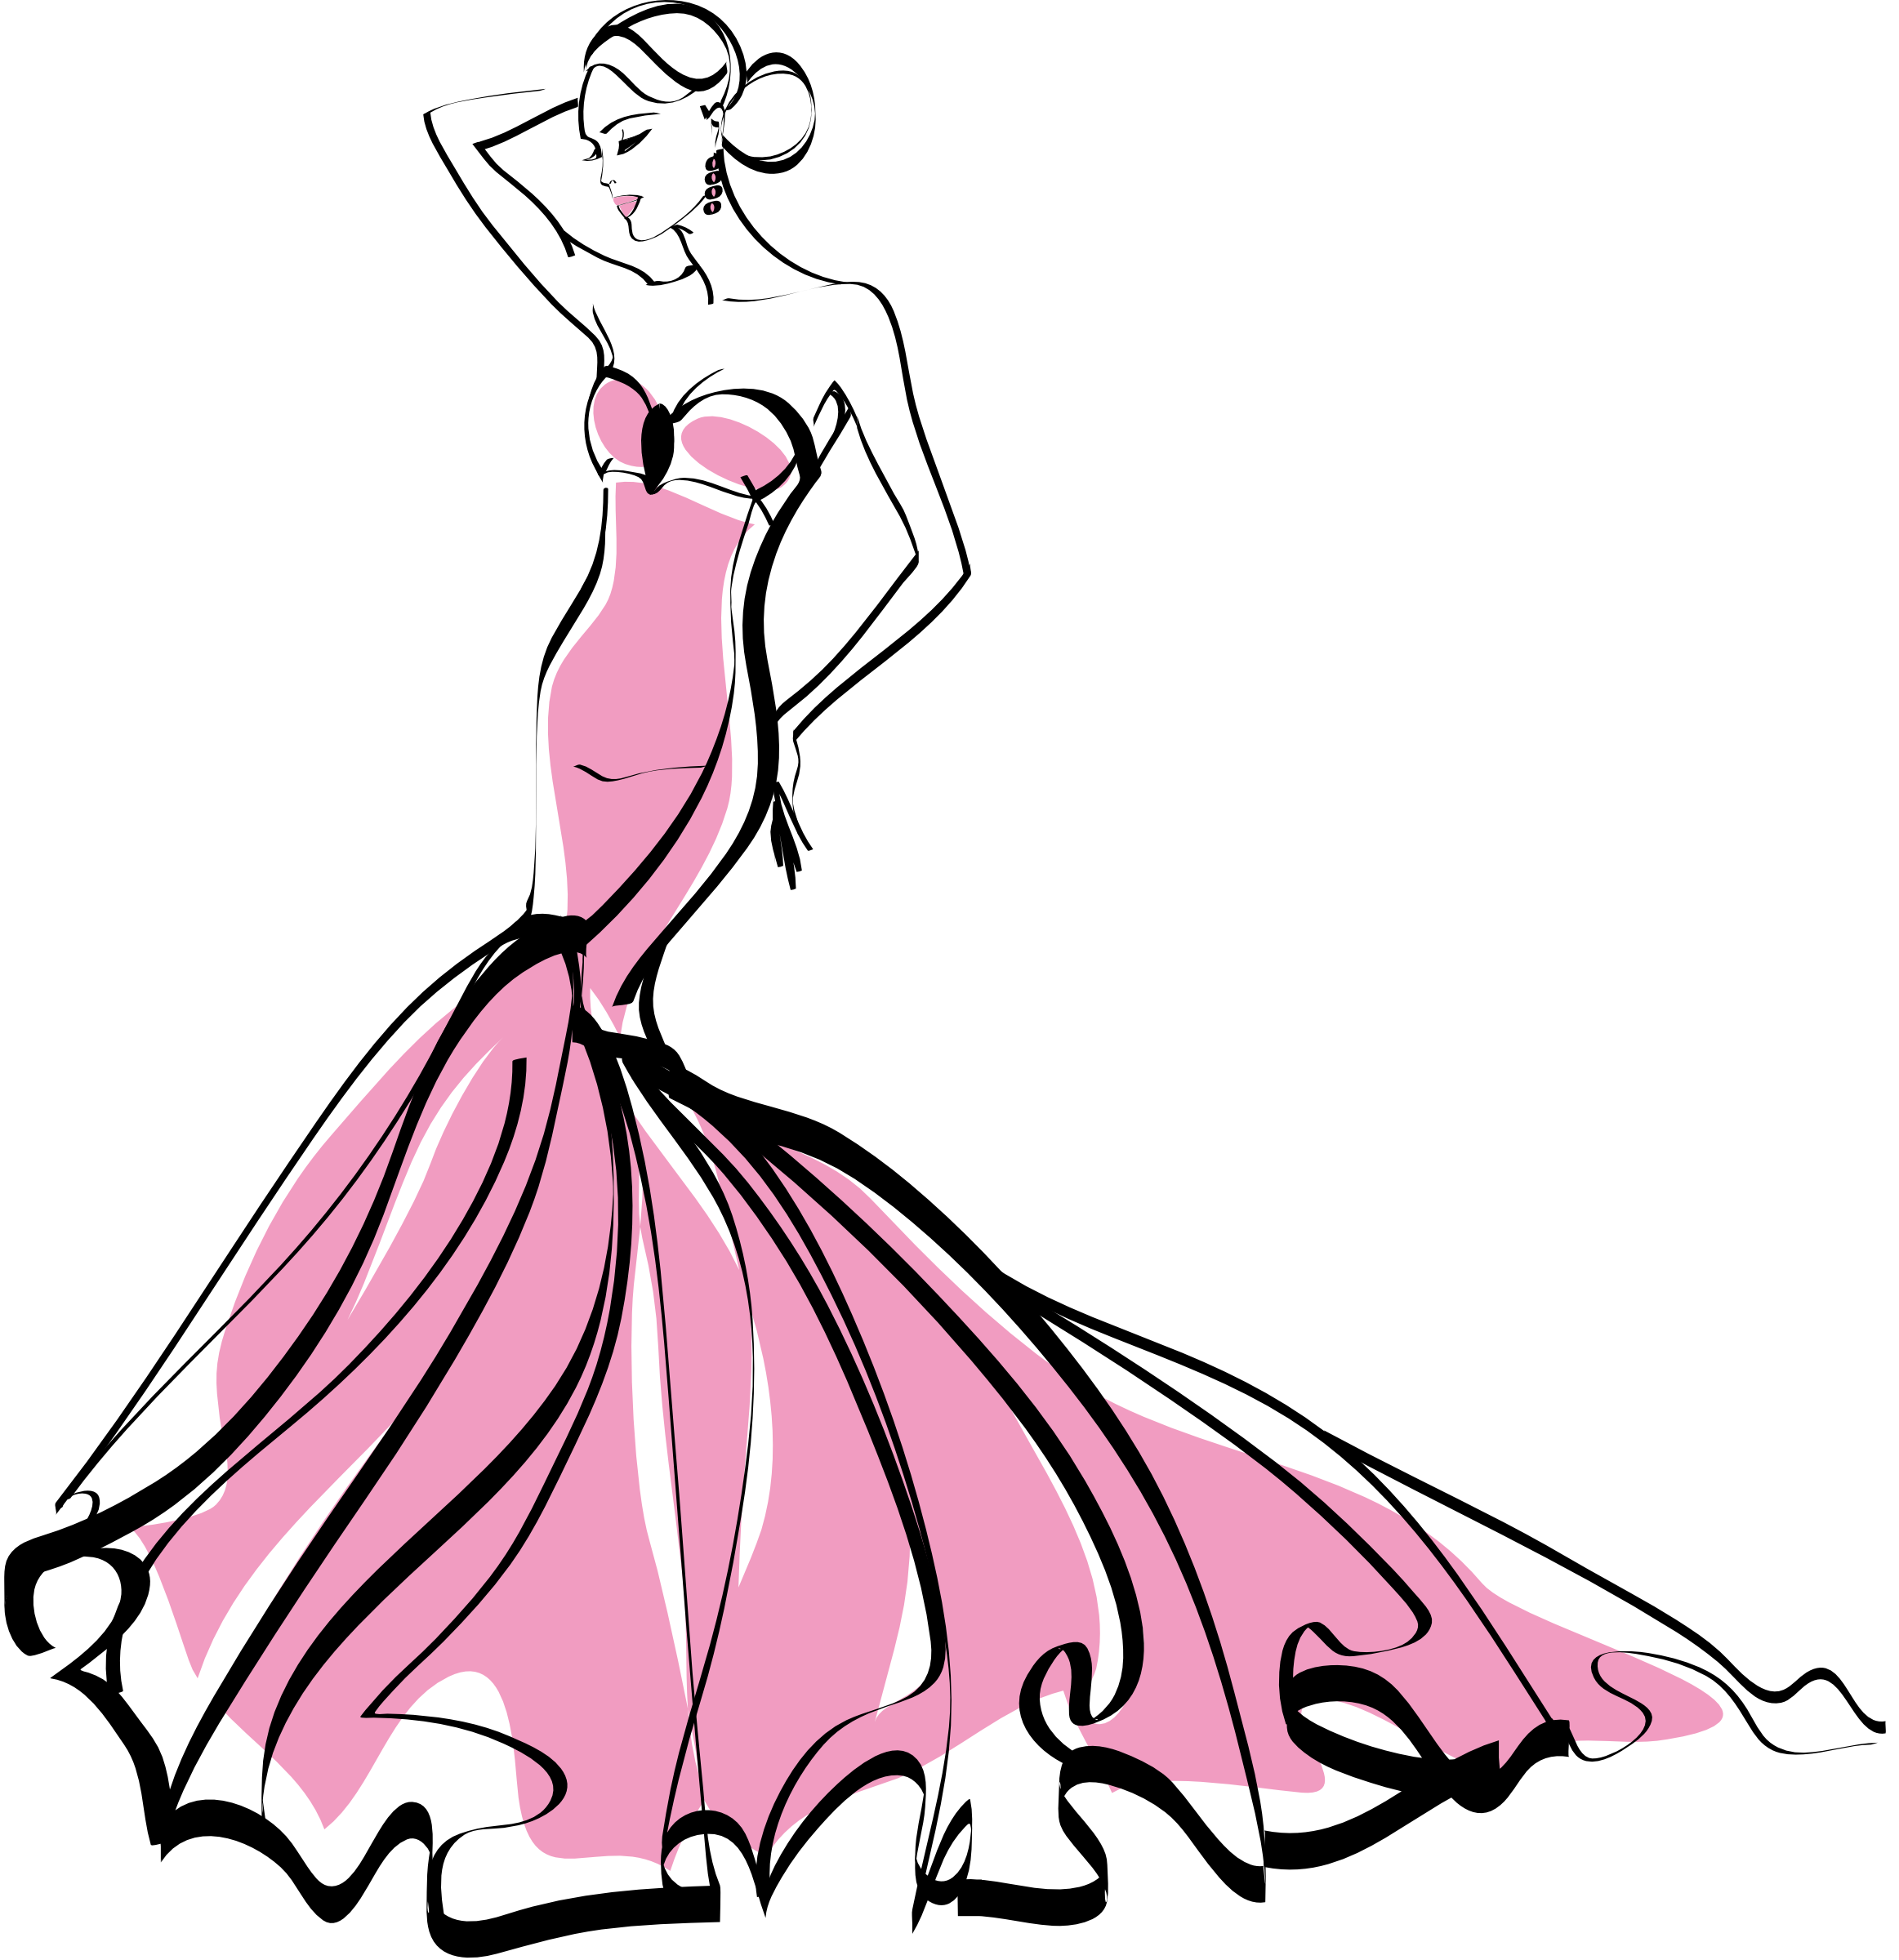 Fashion png free download. Woman clipart mannequin vector download